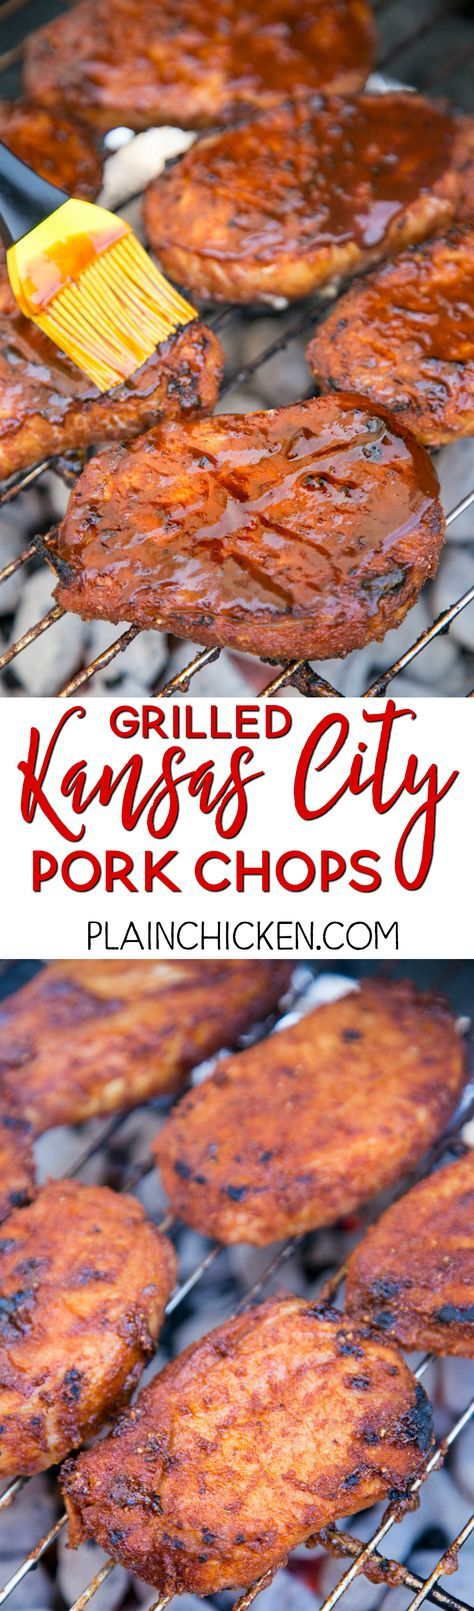 Grilled Kansas City Pork Chops - THE BEST pork chops! Season pork chops with an easy dry rub and refrigerate until ready to grill. Brush with your favorite BBQ sauce before removing from grill! Pork chops, brown sugar, paprika, garlic powder, onion powder, chili powder, salt and pepper. We make these pork chops at least once a month. We LOVE this easy grilling recipe. #chickenbreastrecipeseasy